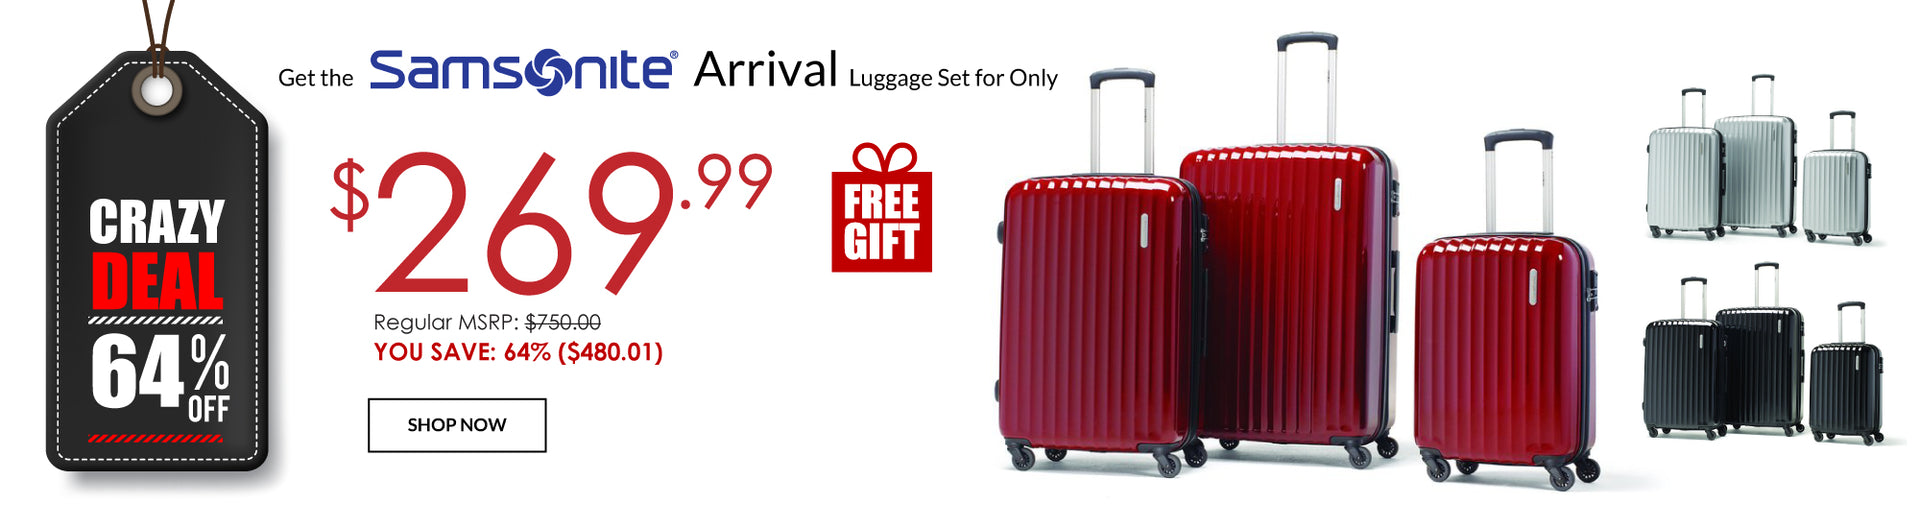 Samsonite Arrival Lightweight Luggage Sale - Canada Luggage Depot